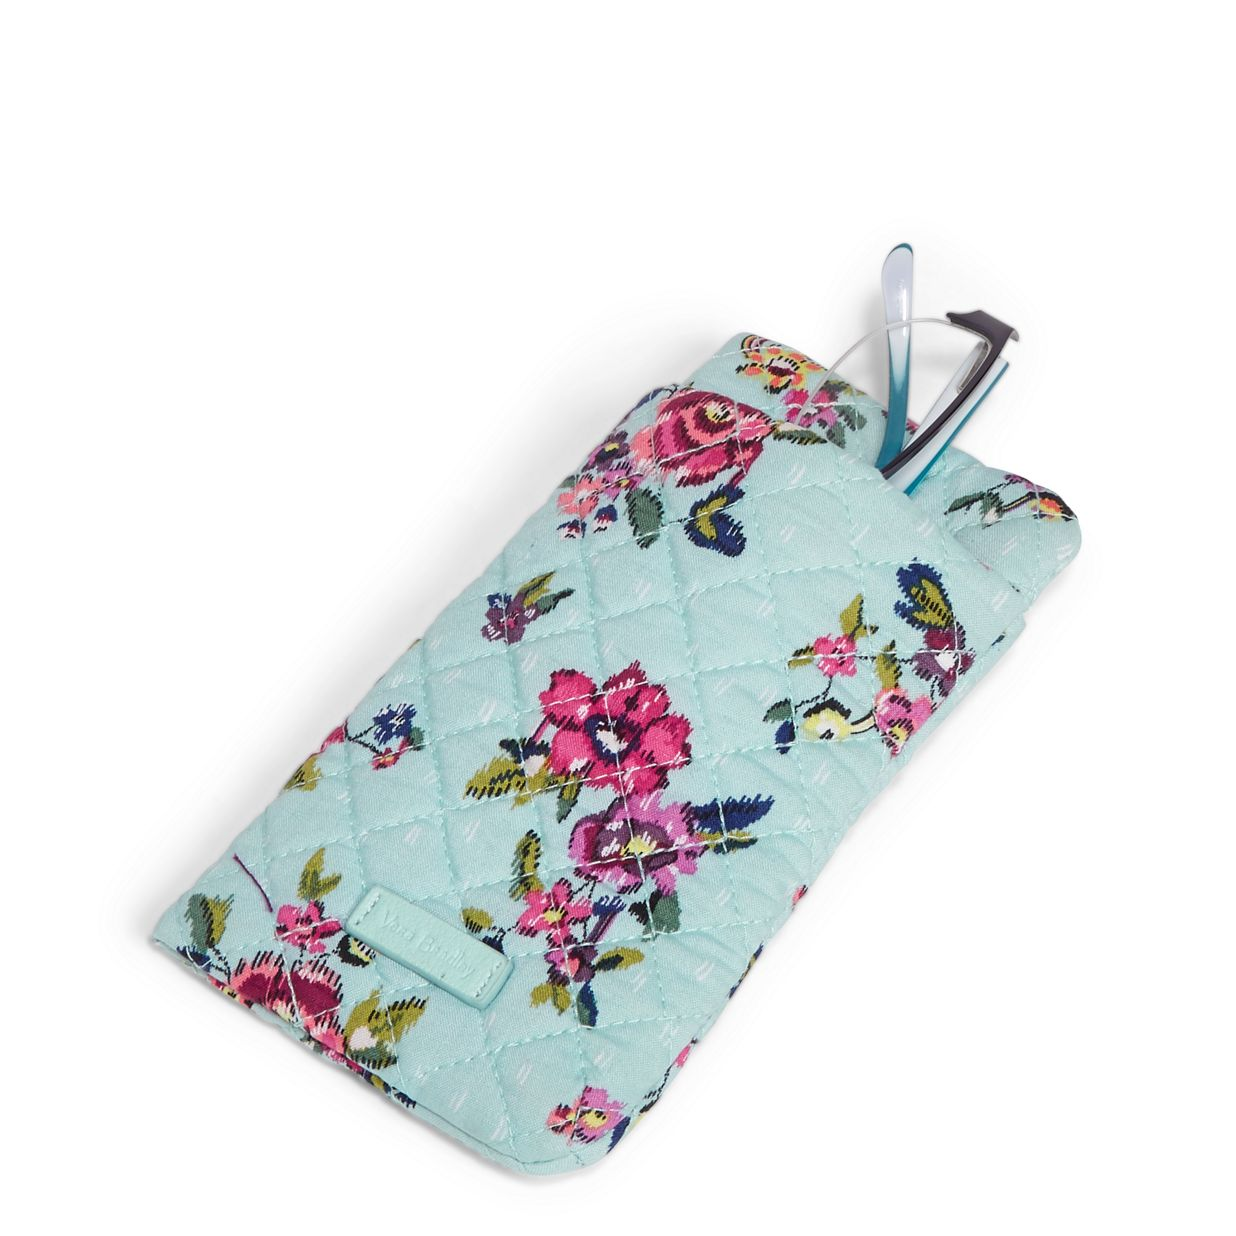 46e1c43fb4 Image of Iconic Double Eye Case in Butterfly Flutter